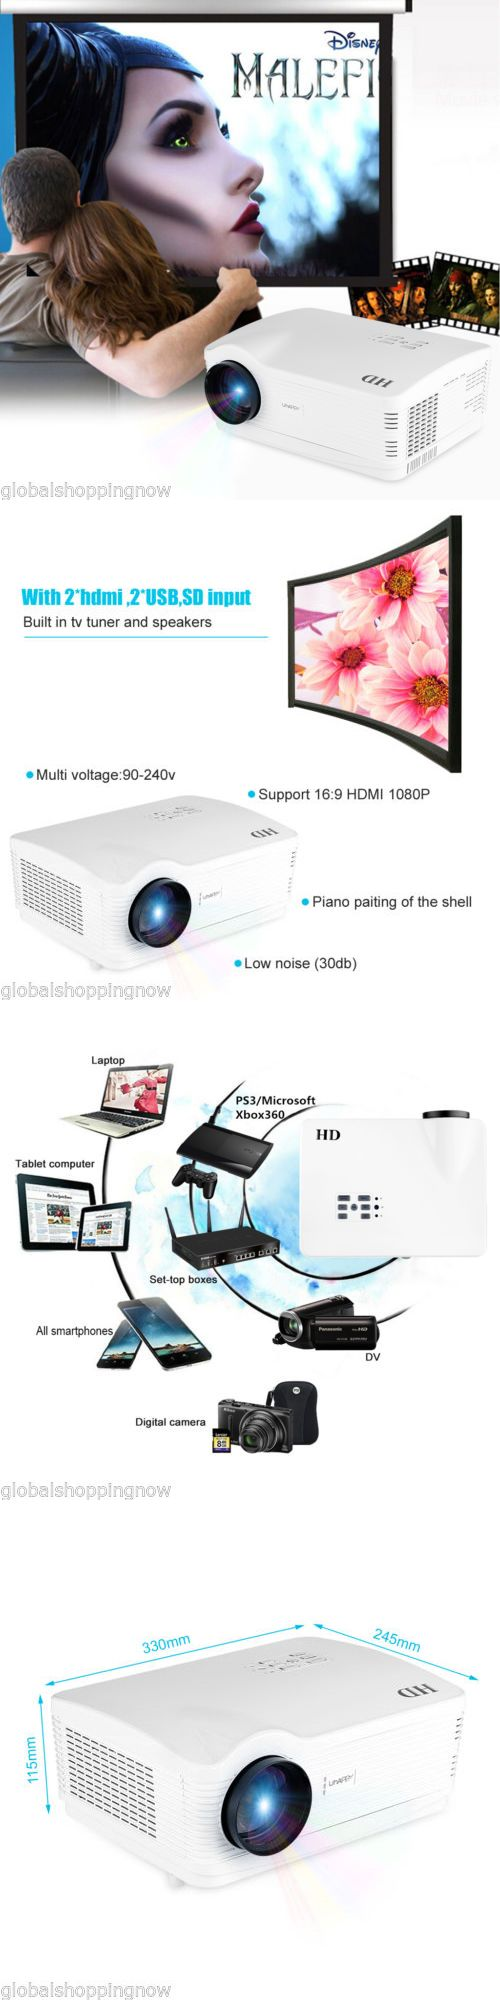 Home Theater Projectors: Wifi 5000 Lumens 3D Projector Full Hd 1080P Led Home Theater Av Vga Tv Usb Hdmi -> BUY IT NOW ONLY: $229.99 on eBay!